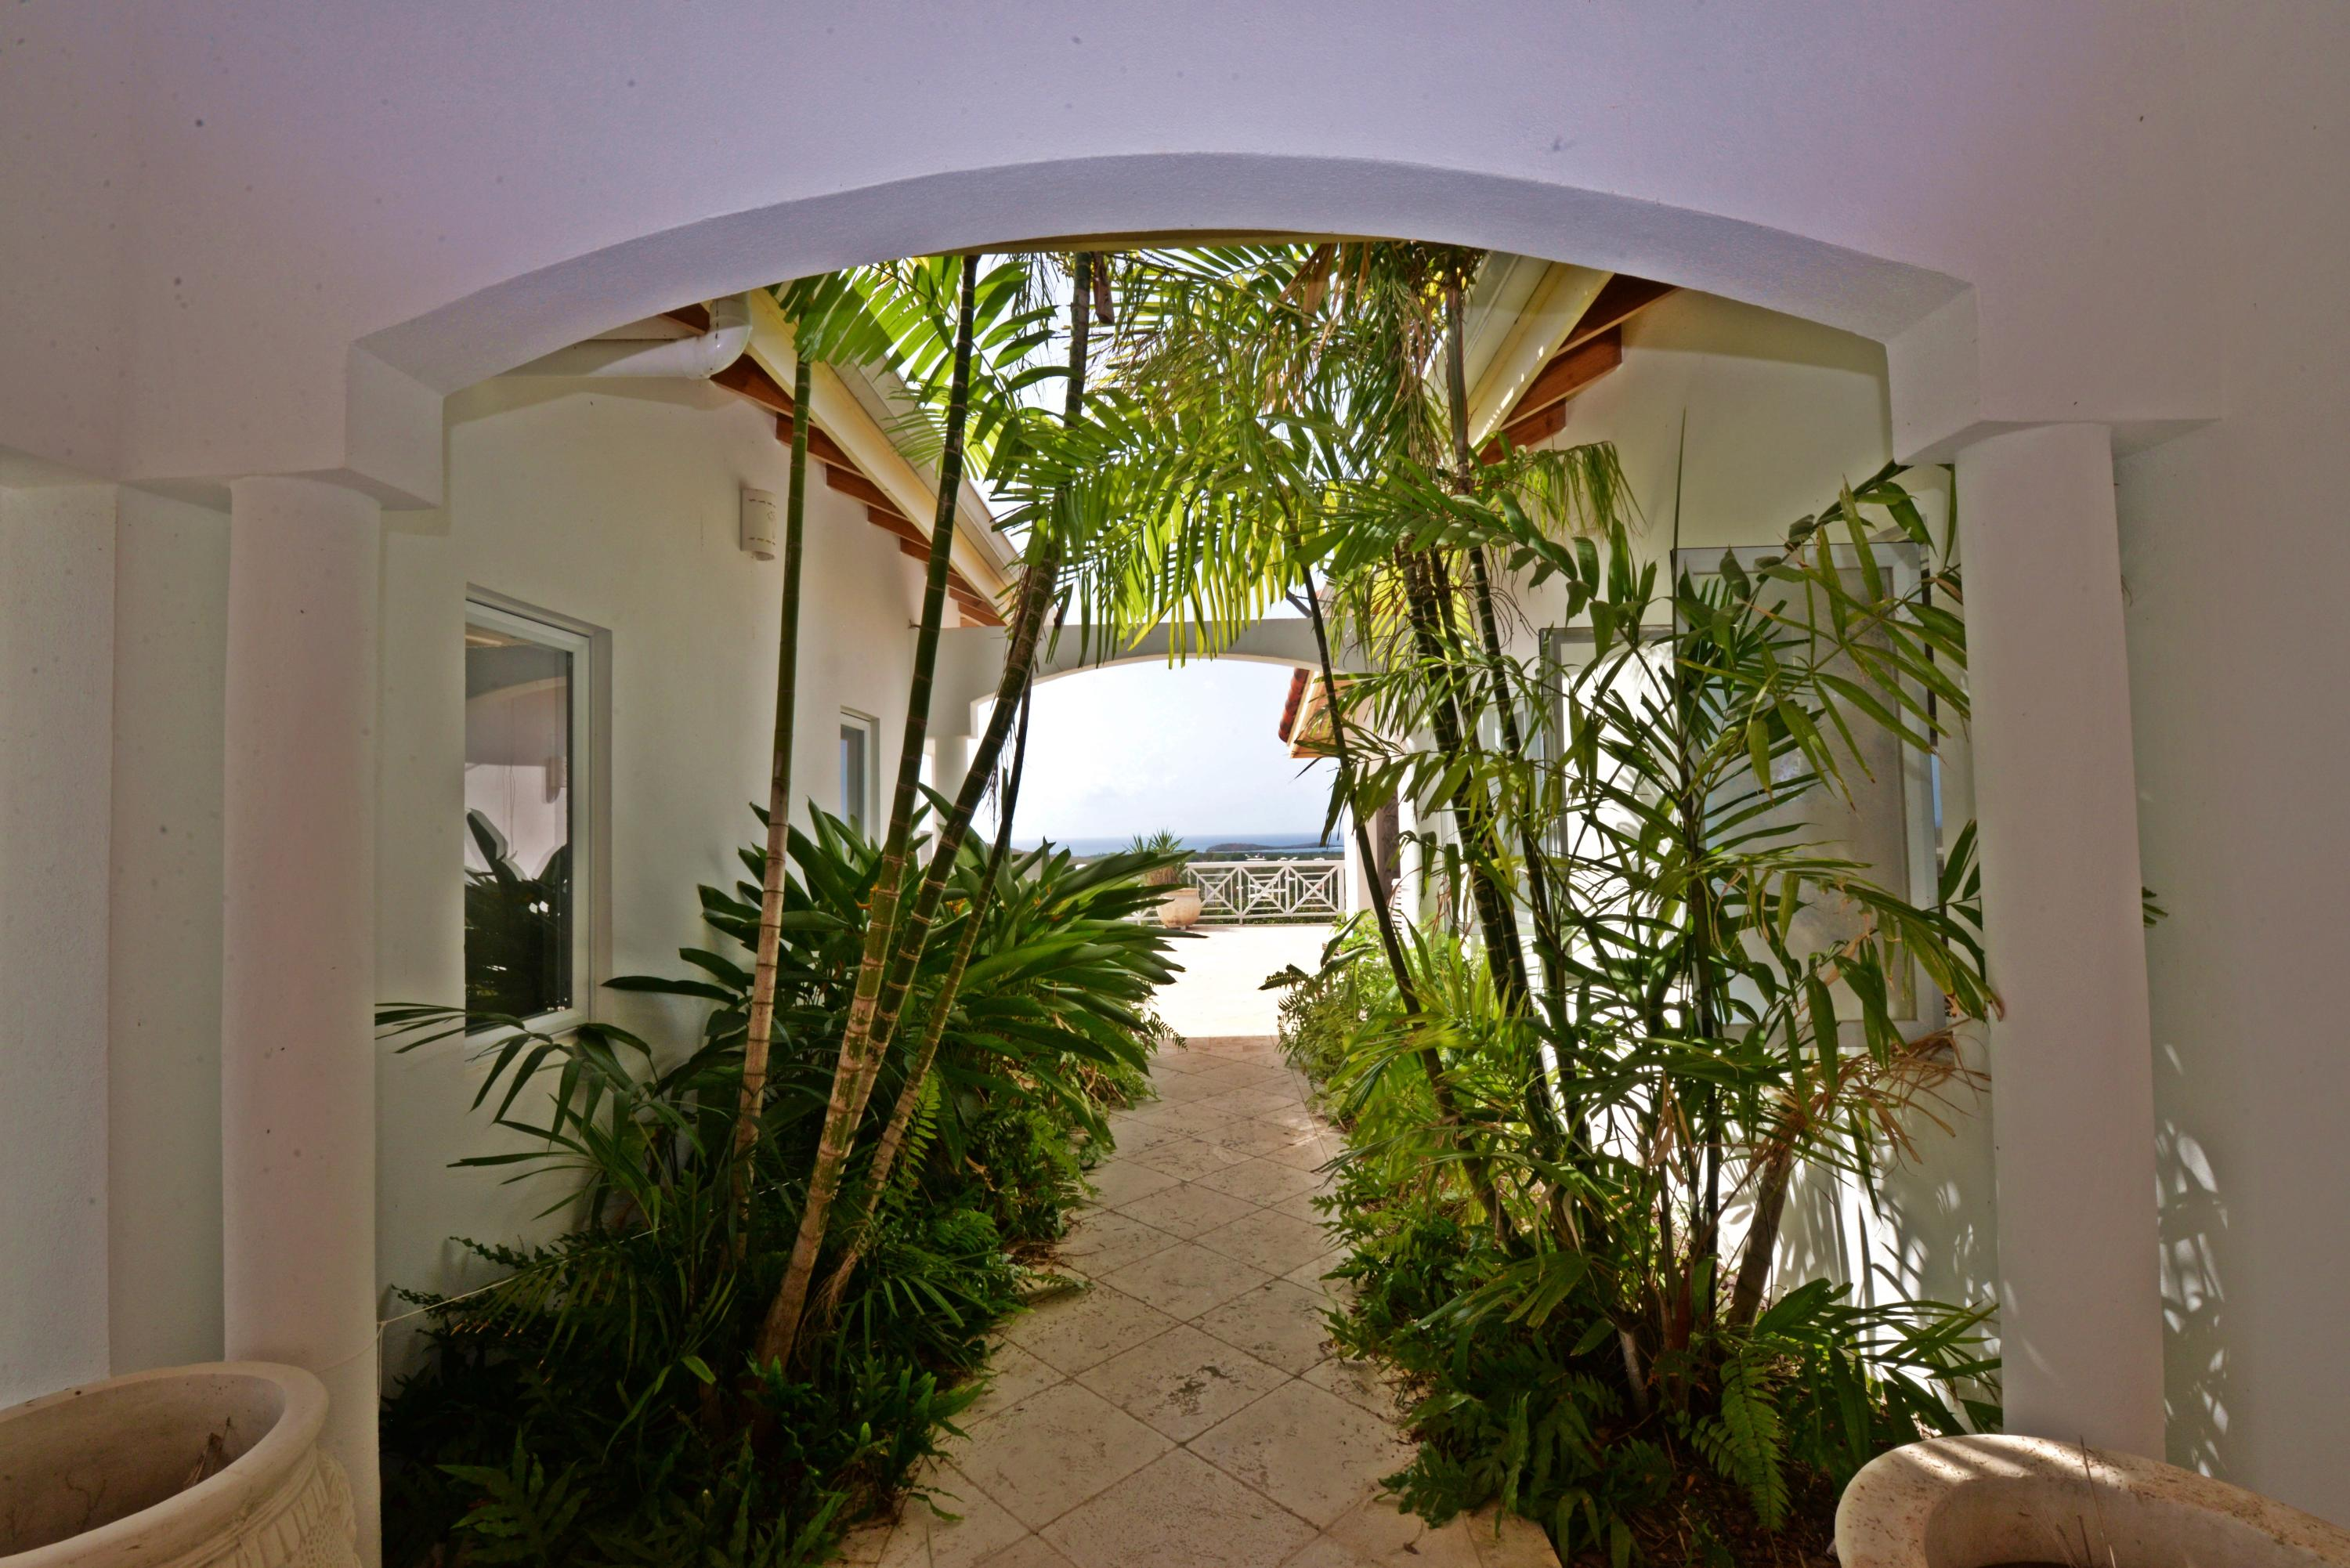 Beautiful archway leads to pool & views